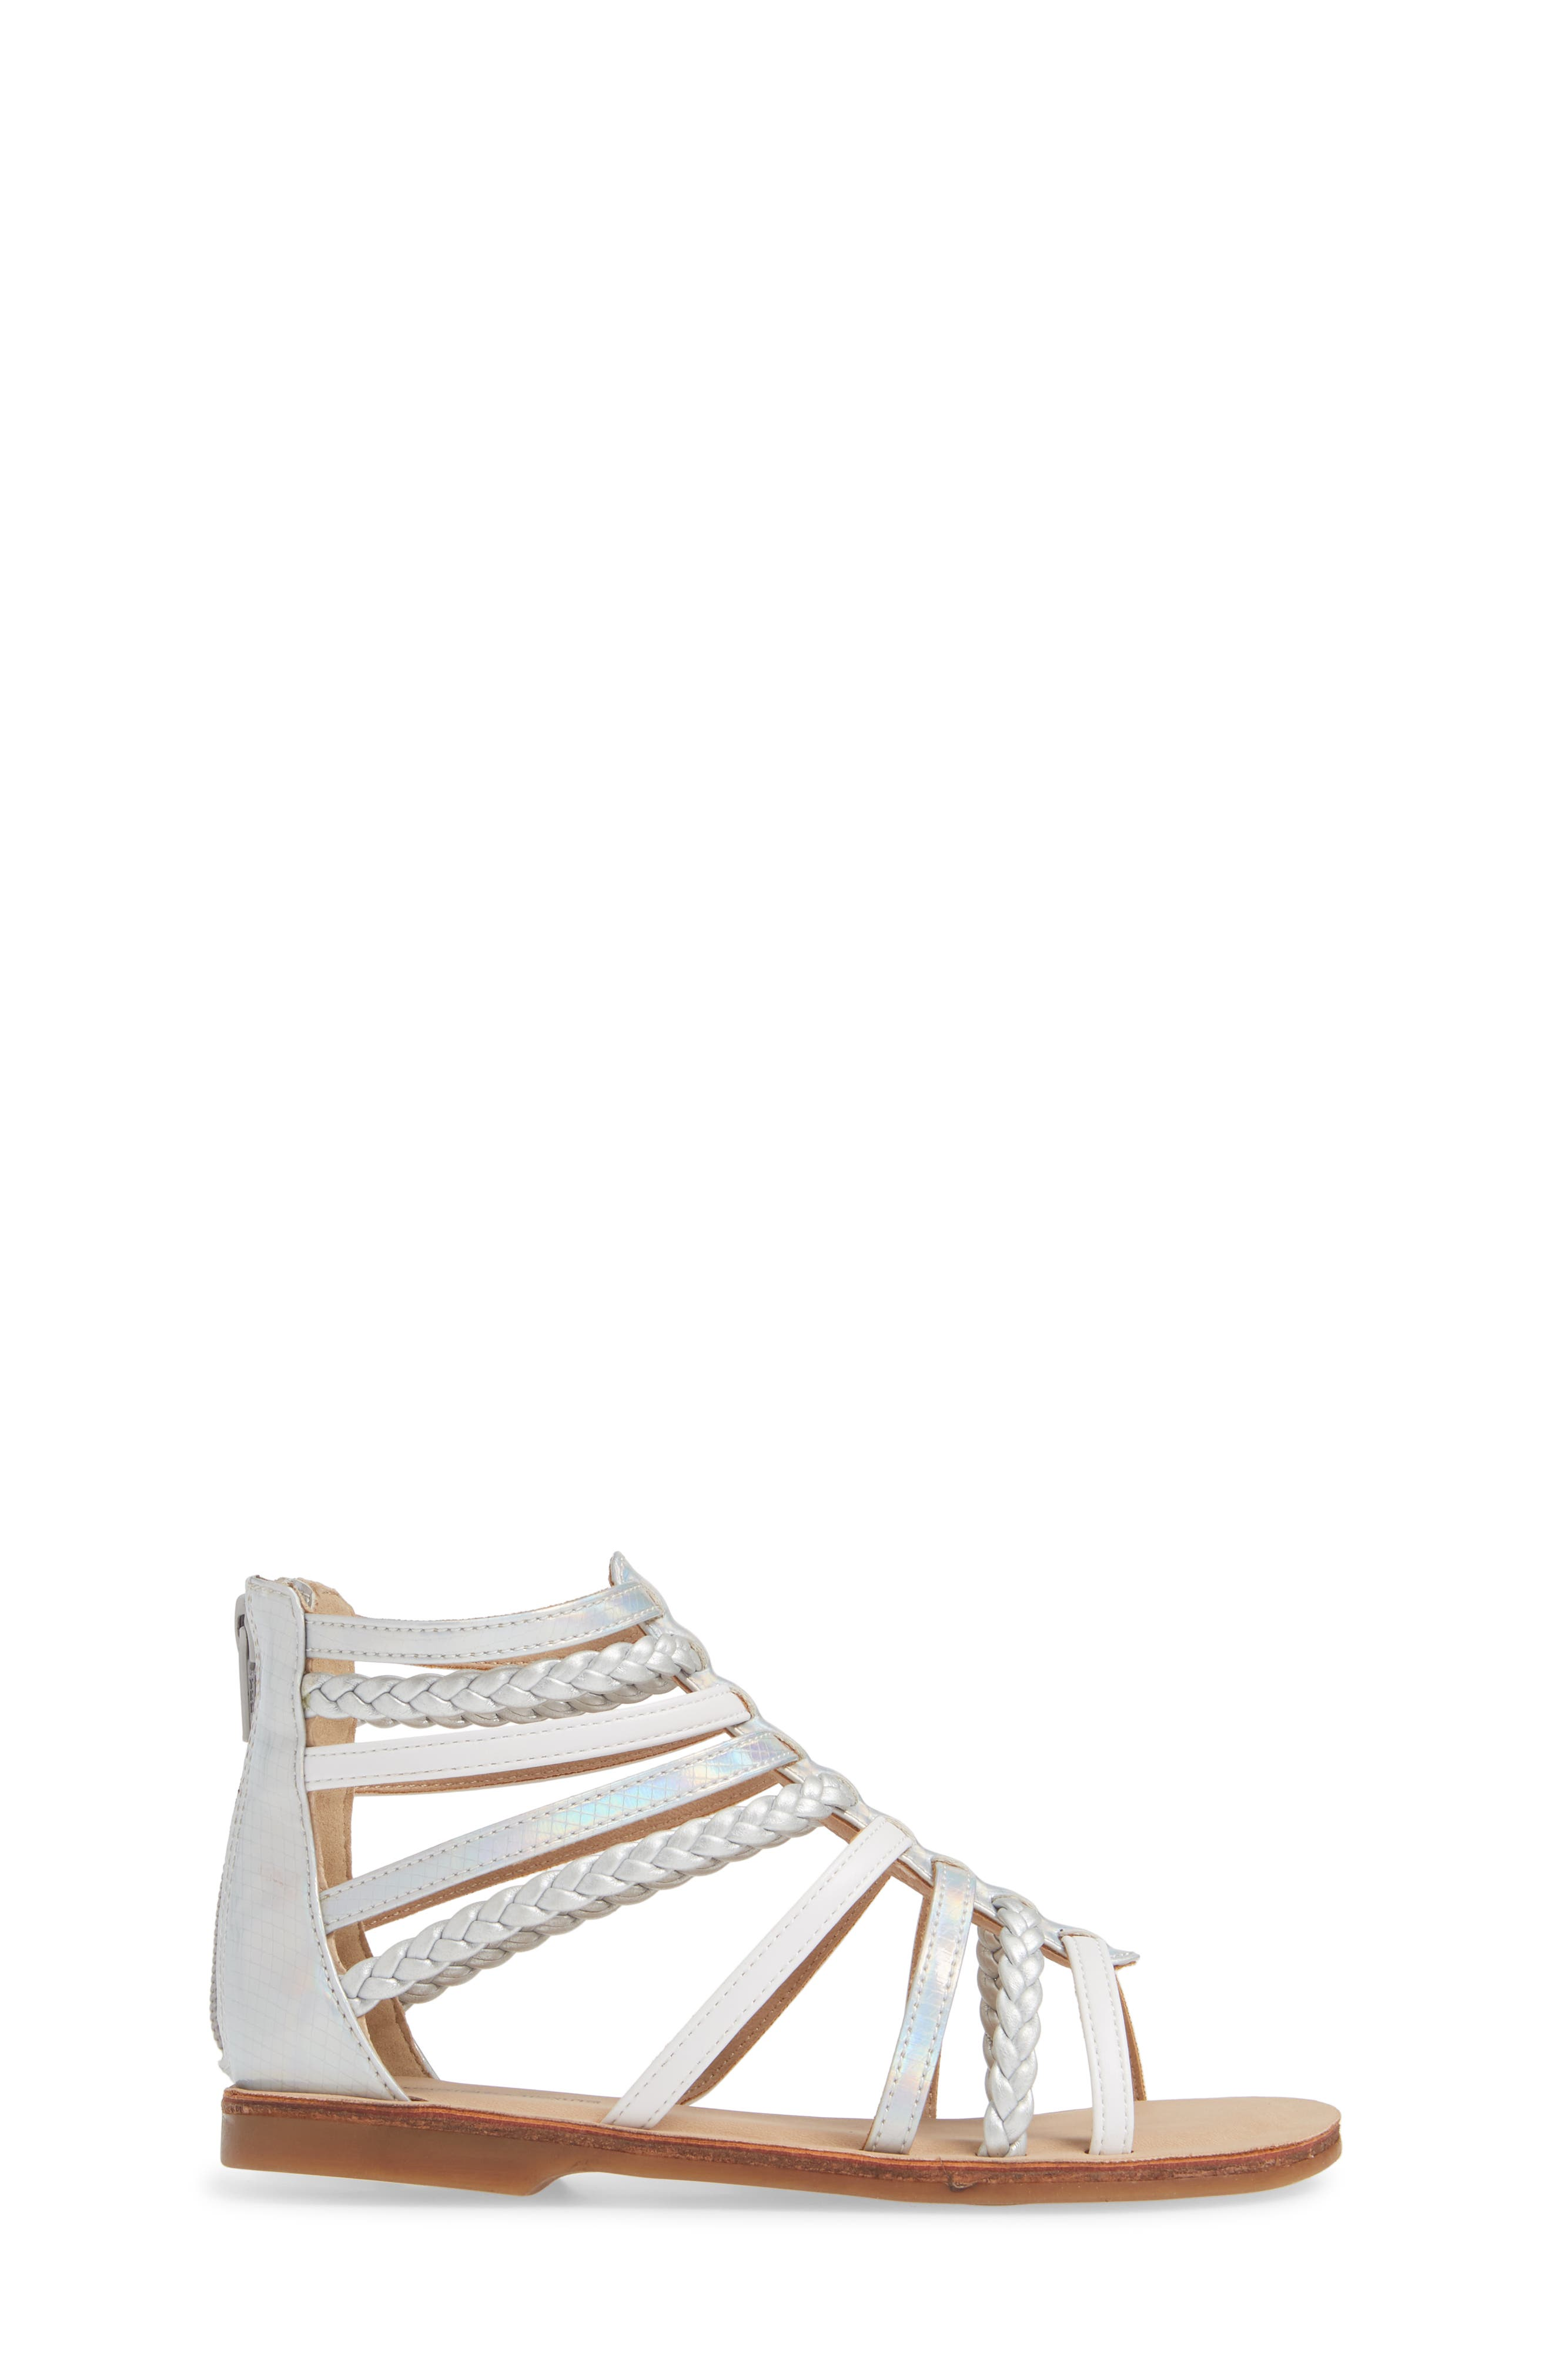 Sonja Braided Gladiator Sandal,                             Alternate thumbnail 3, color,                             WHITE/SILVER FAUX LEATHER